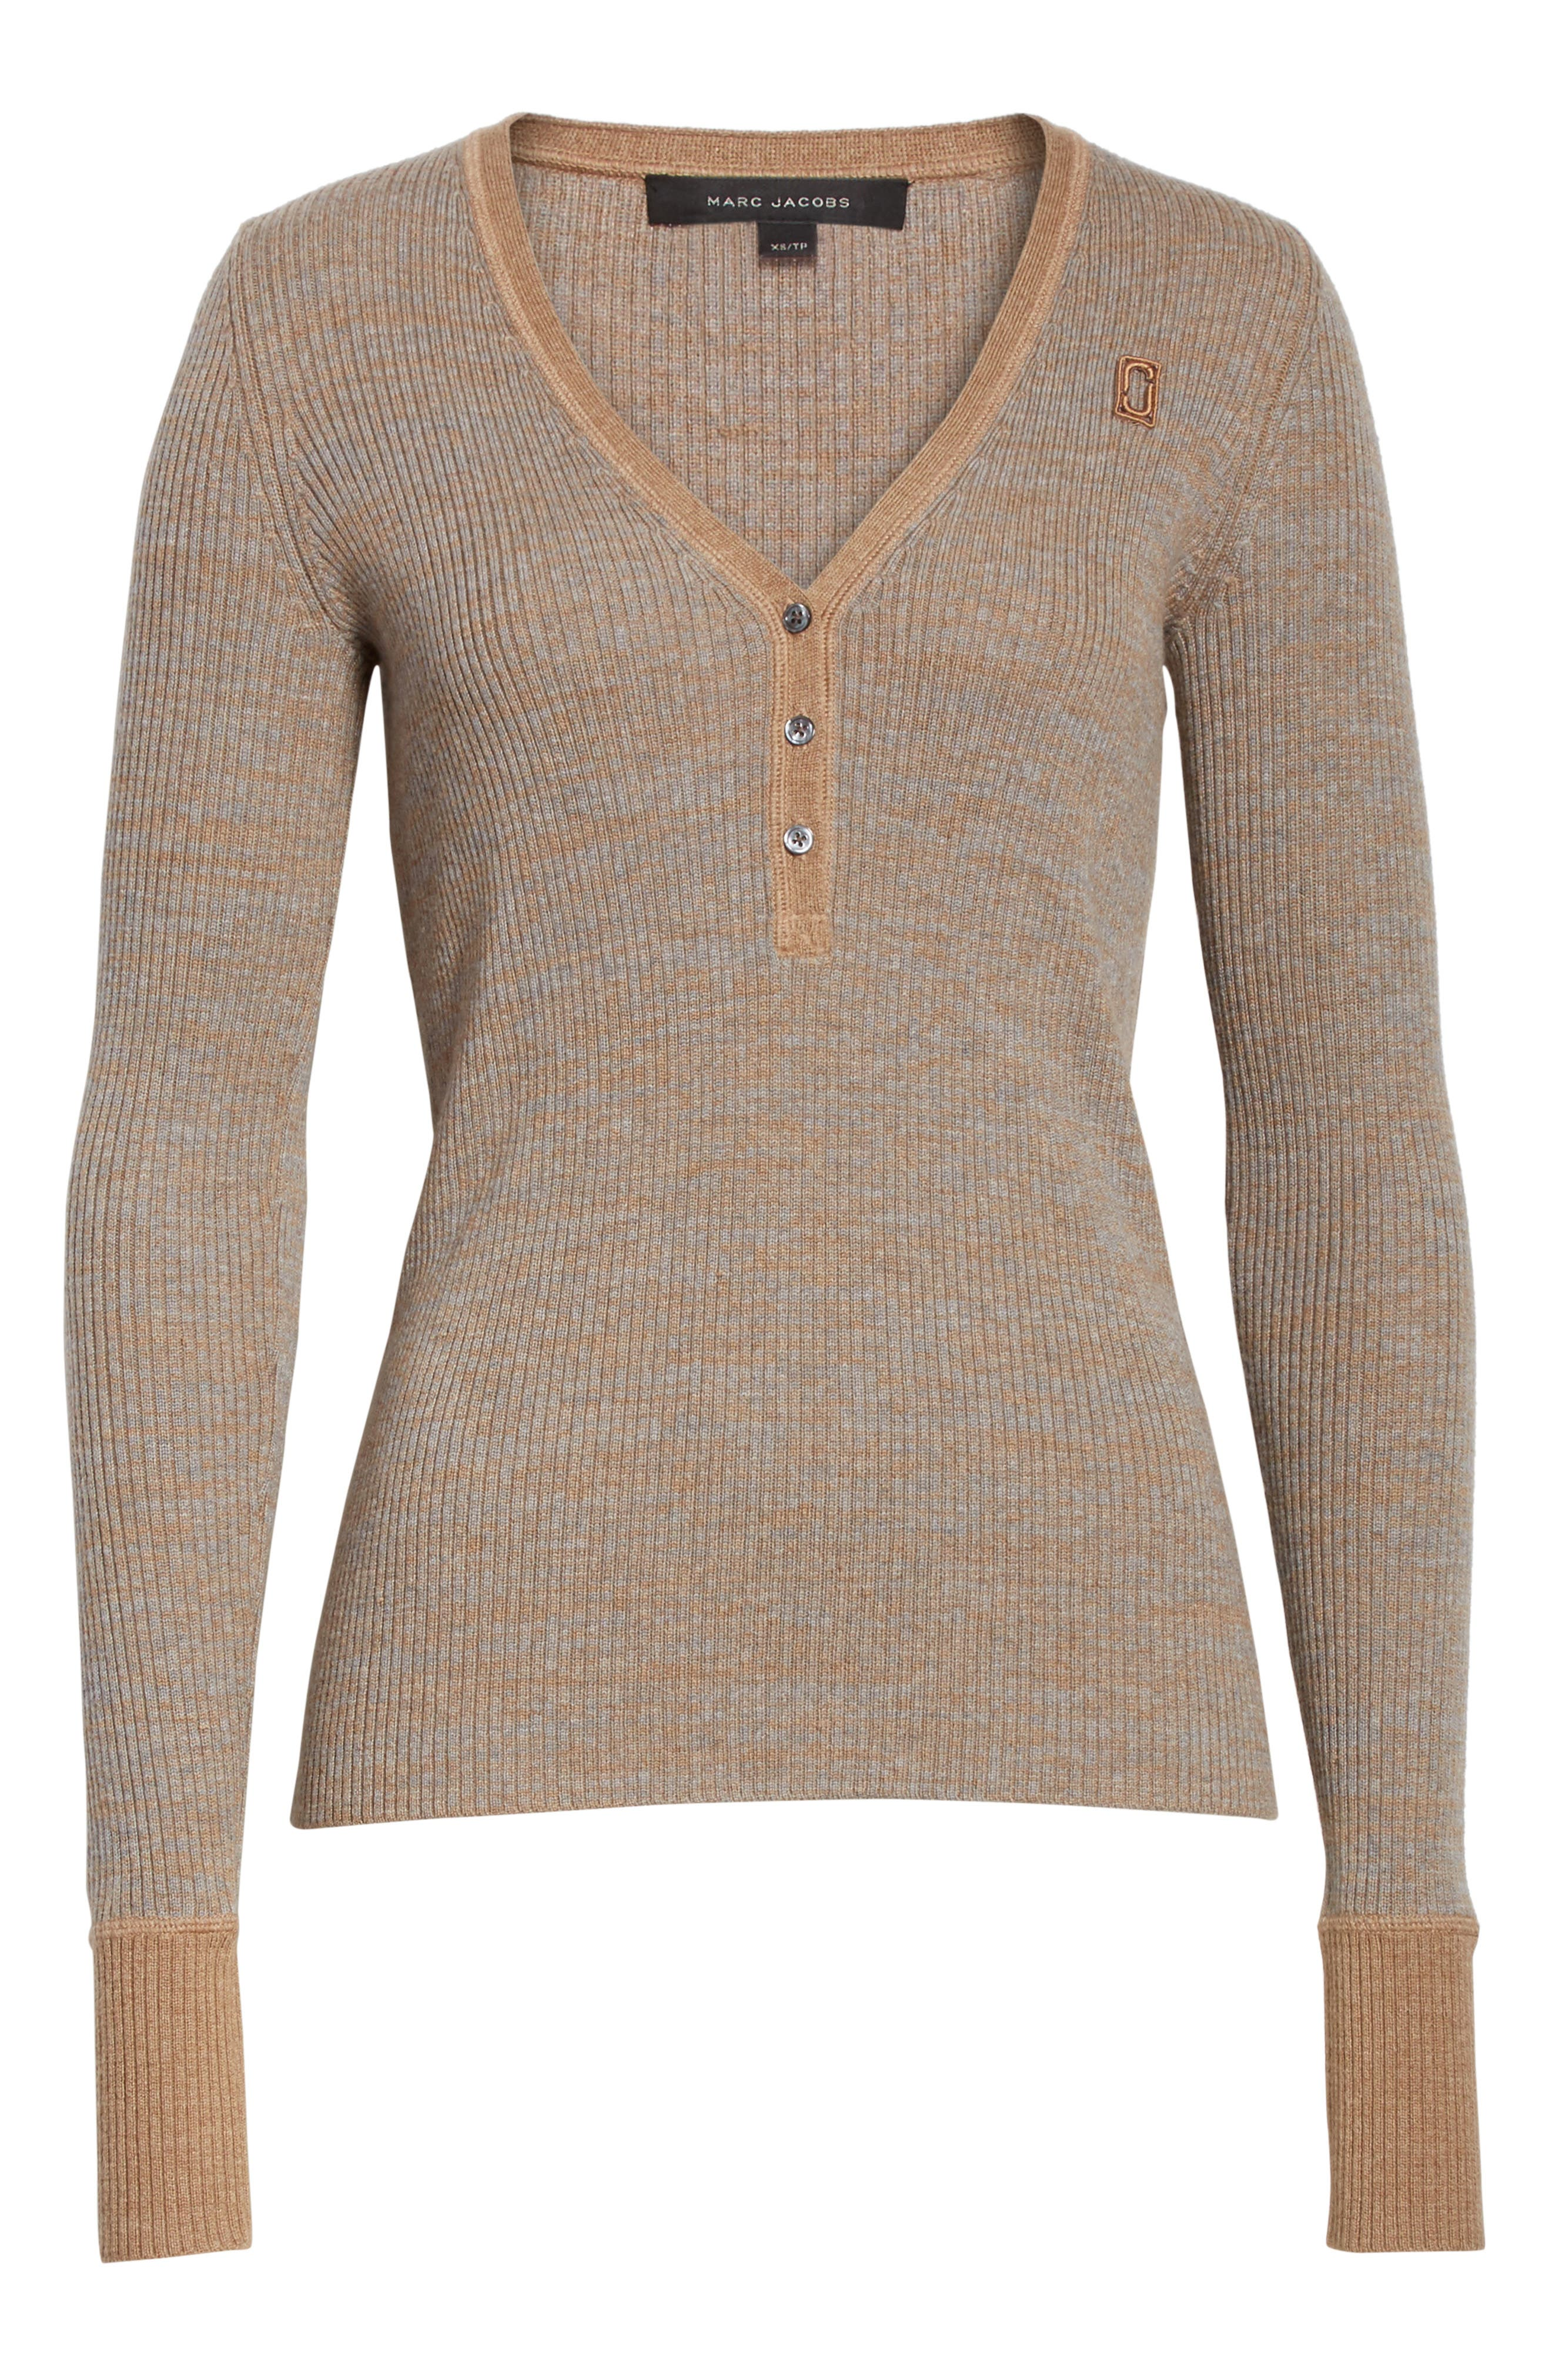 Ribbed V-Neck Wool Sweater,                             Alternate thumbnail 6, color,                             208